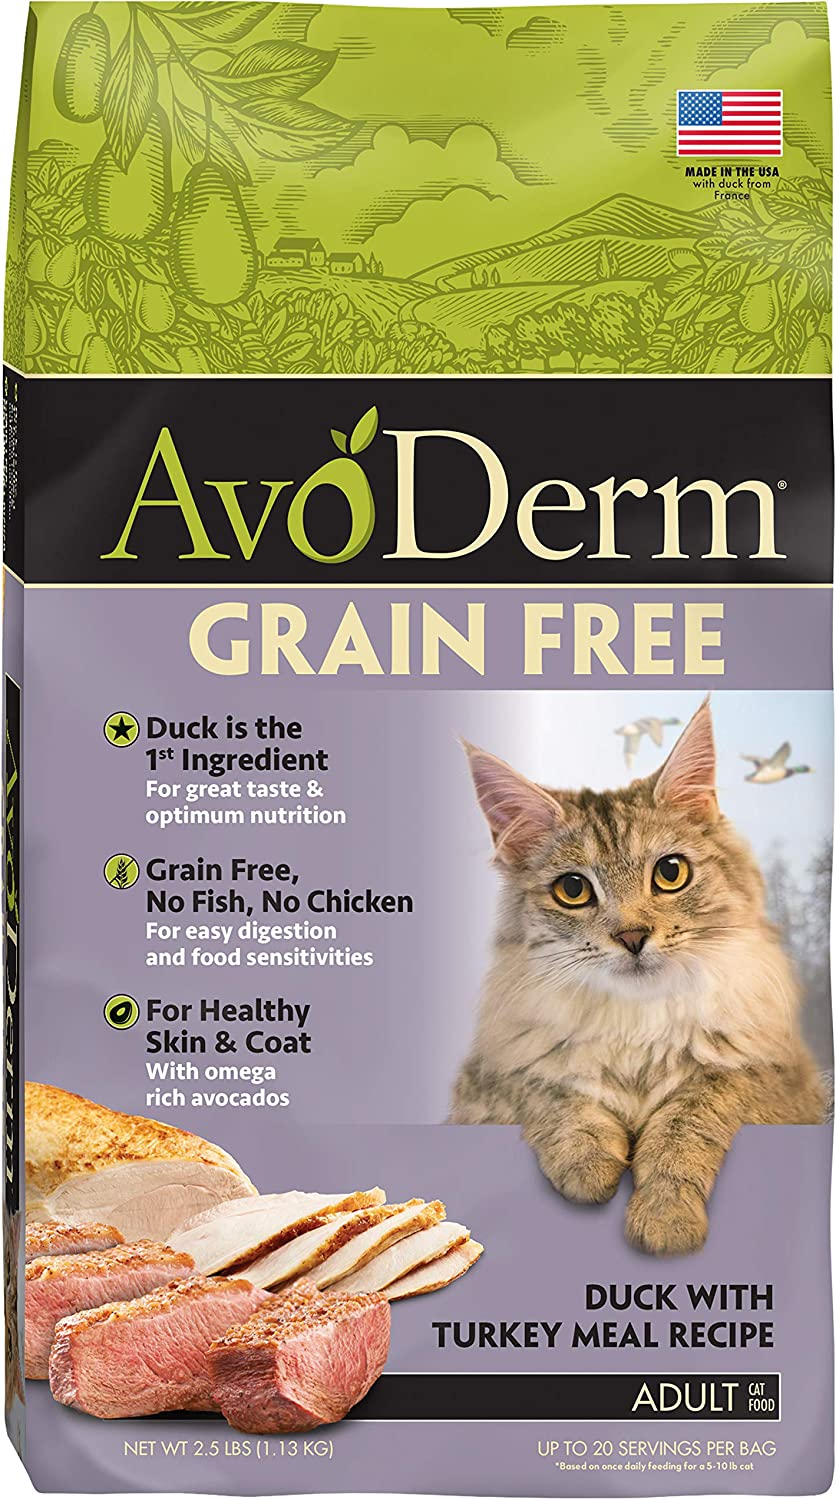 Avoderm Natural Grain-Free Dry Cat Food, All Life Stages Duck Recipe, 2.5 Lb Bag